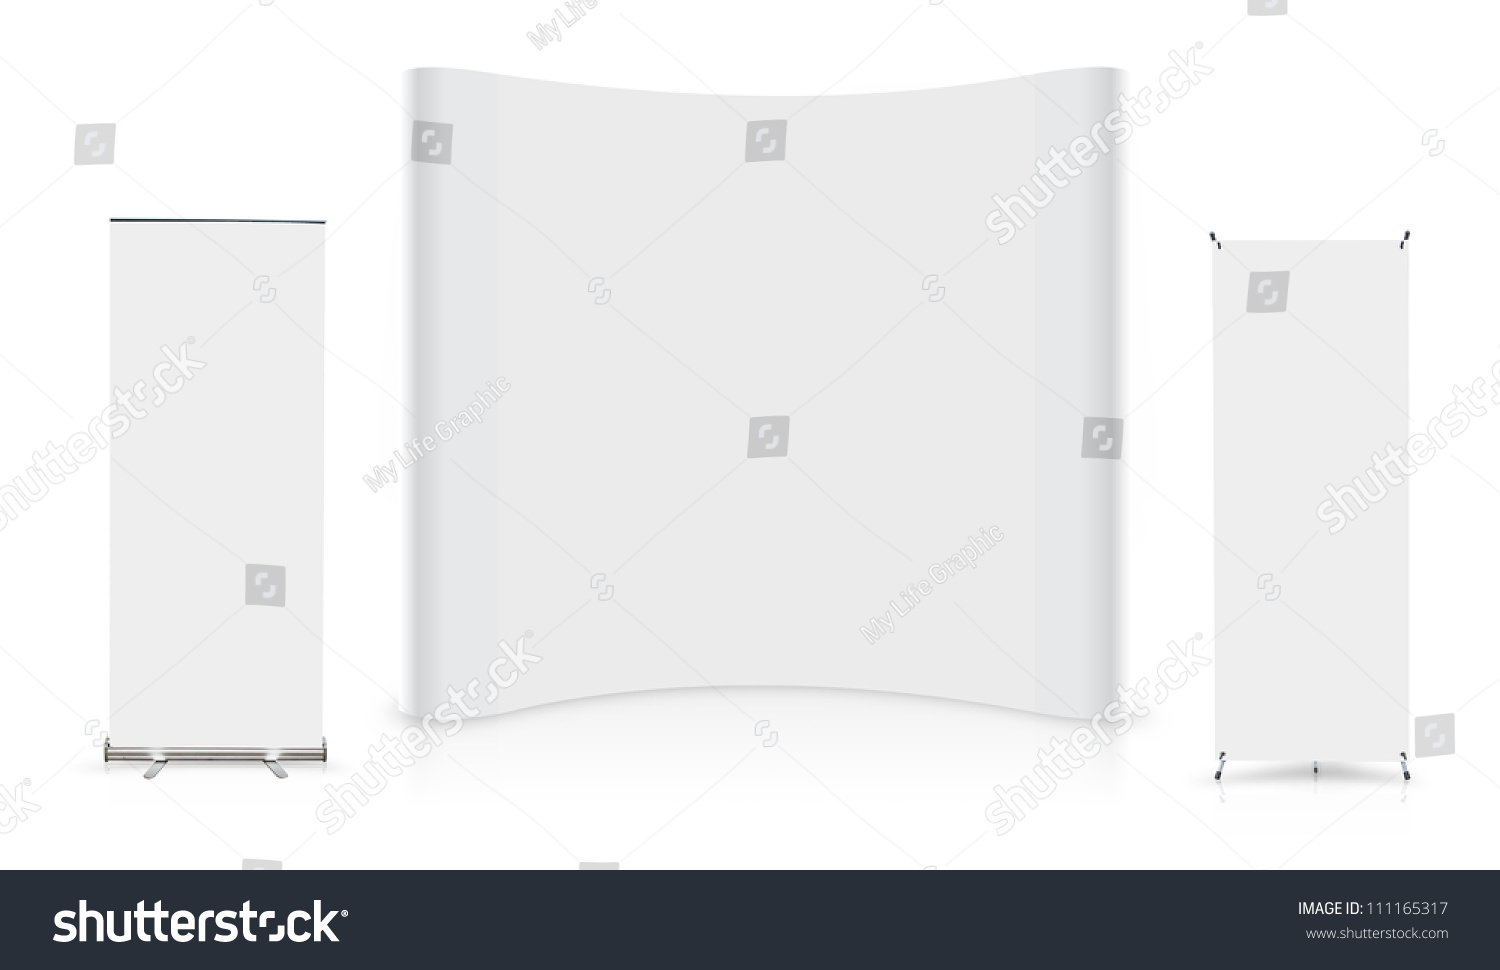 Exhibition Booth Banner : Blank trade show booth roll banner stock illustration